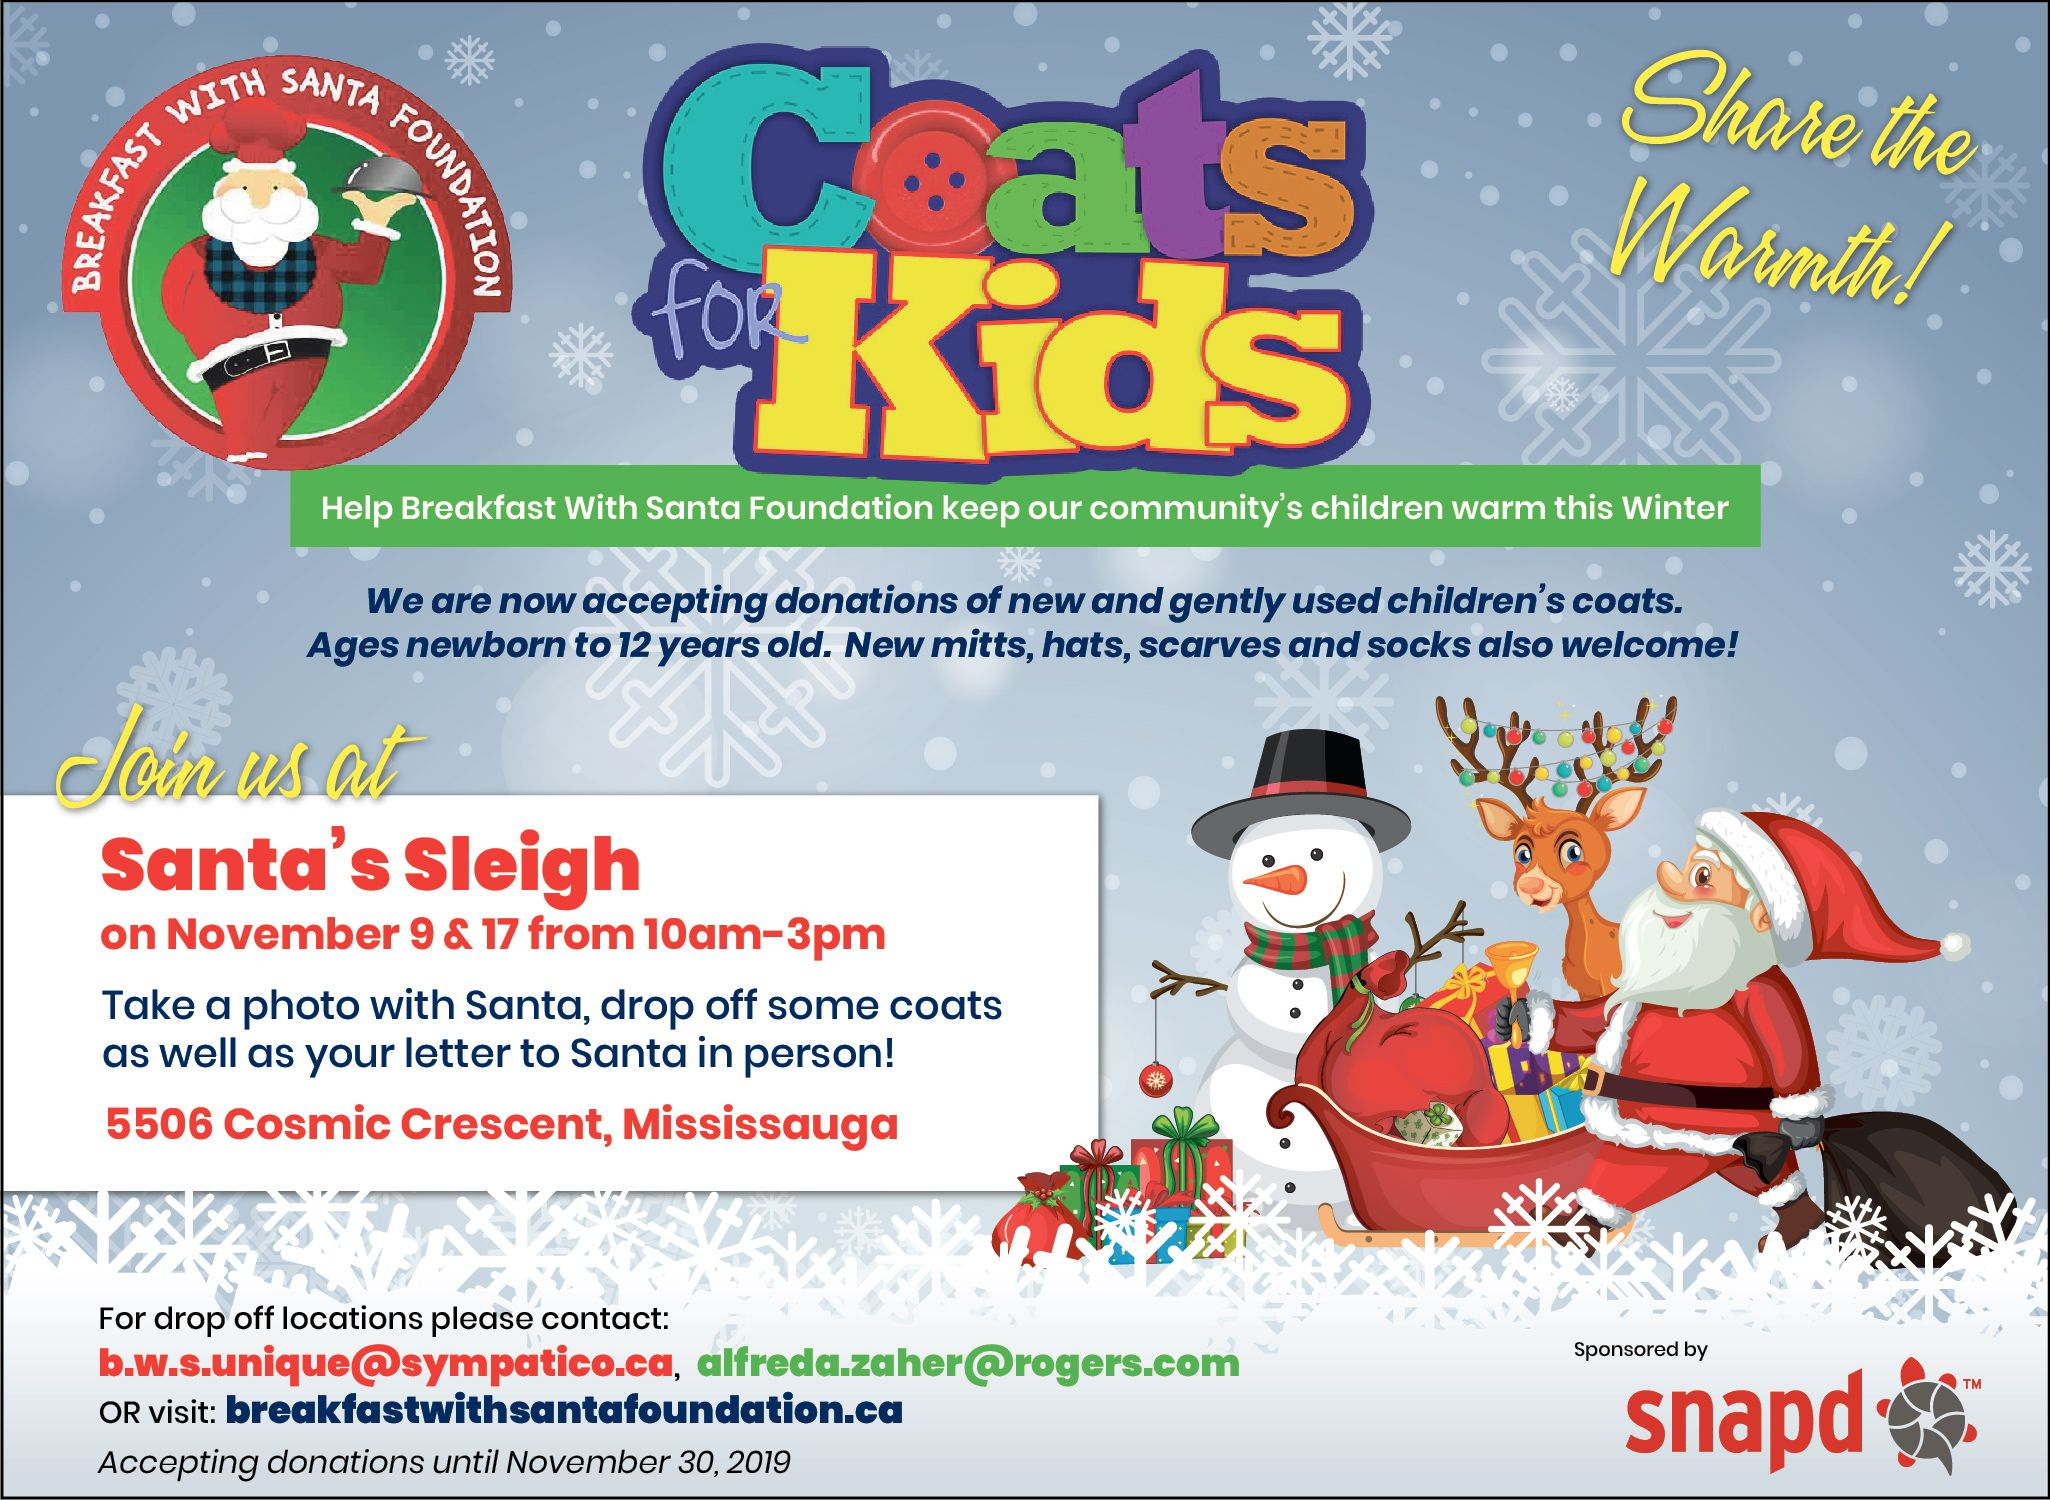 COATS 4 KIDS SNAP'D FLYER